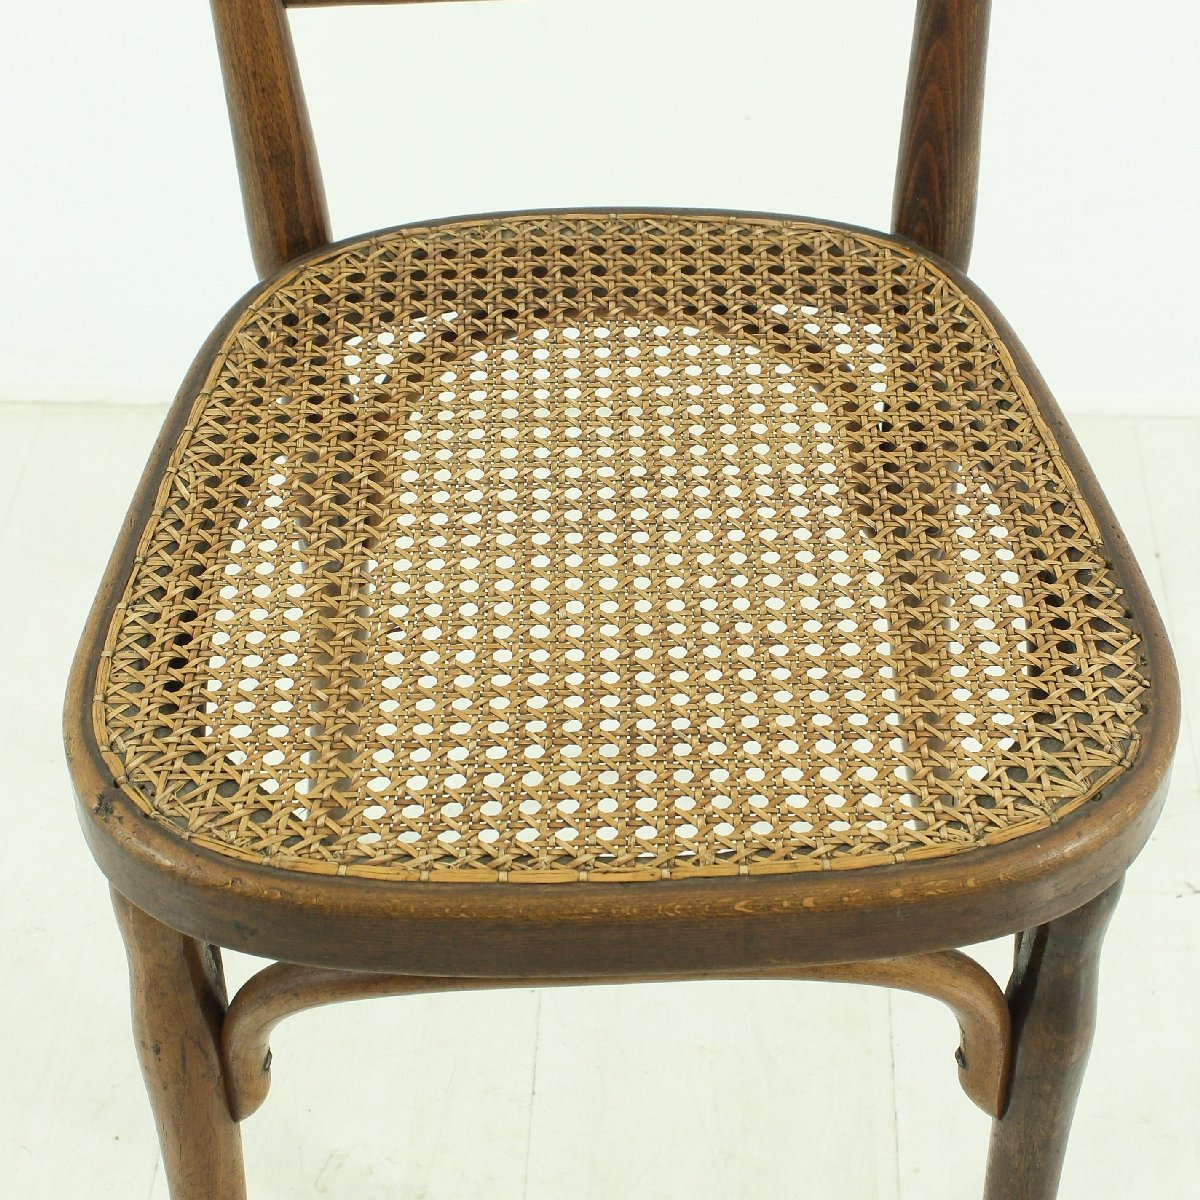 vintage bentwood chairs swivel chair entry definition antique bistro set of 2 for sale at pamono